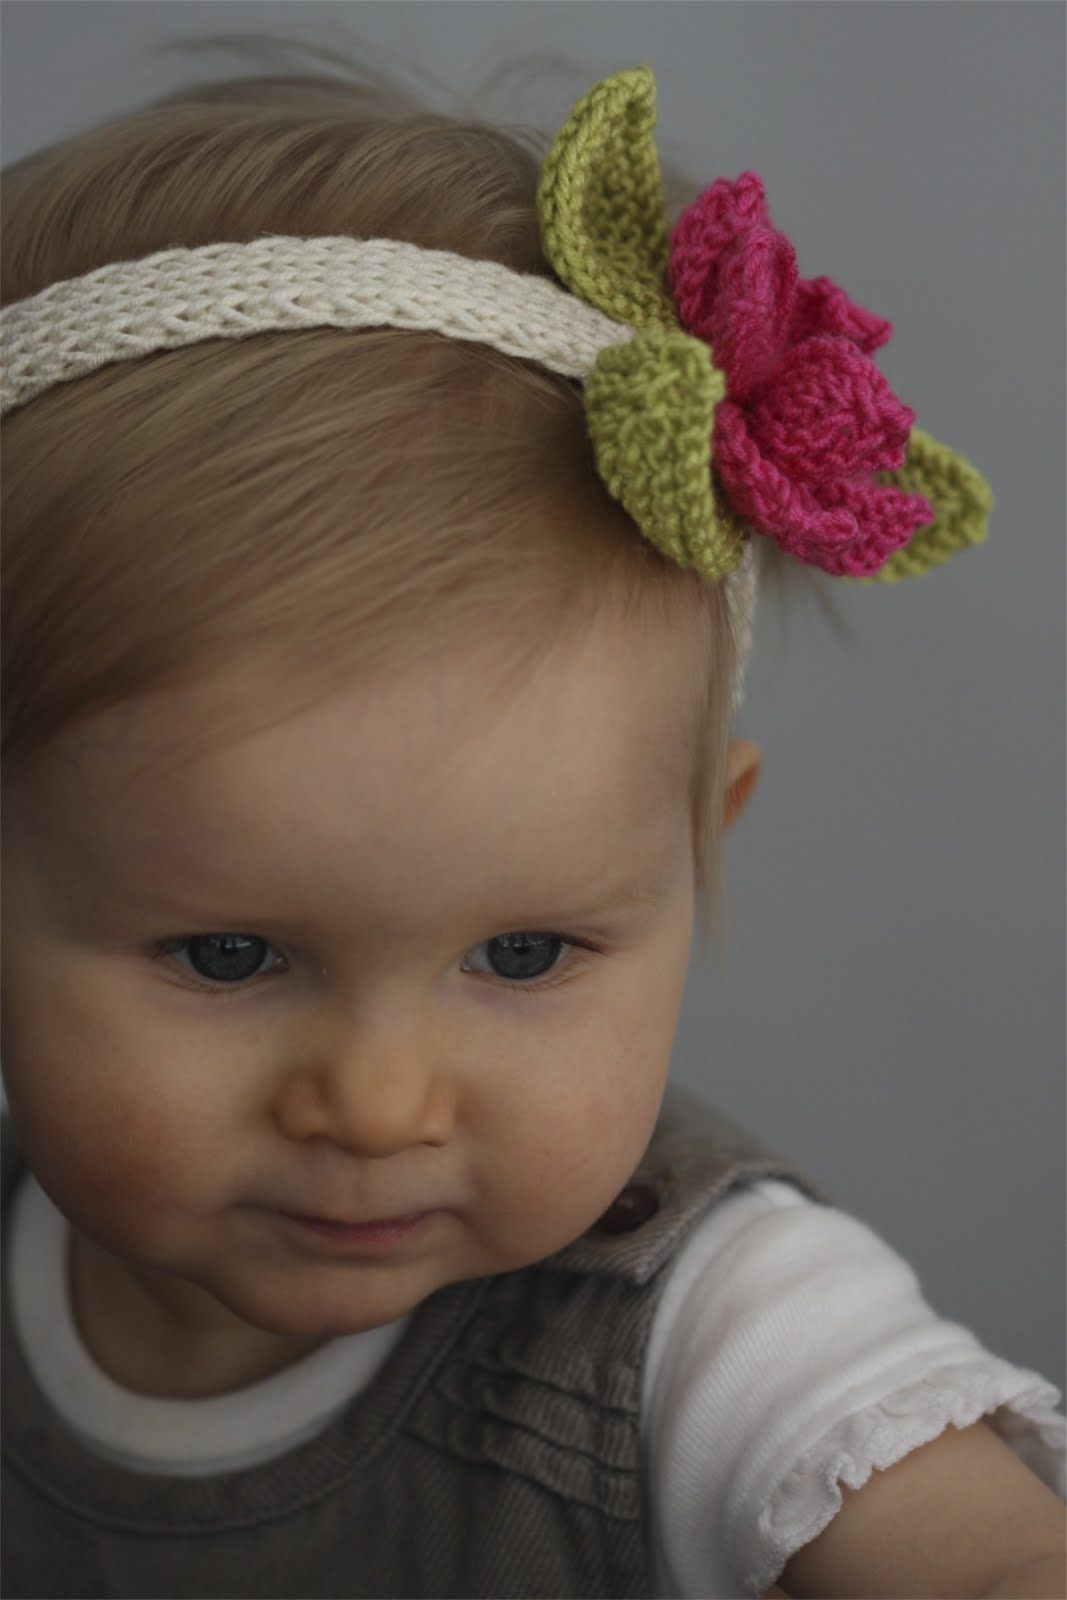 Knitted Baby Headbands | Baby Headband Pattern is Now Available ...